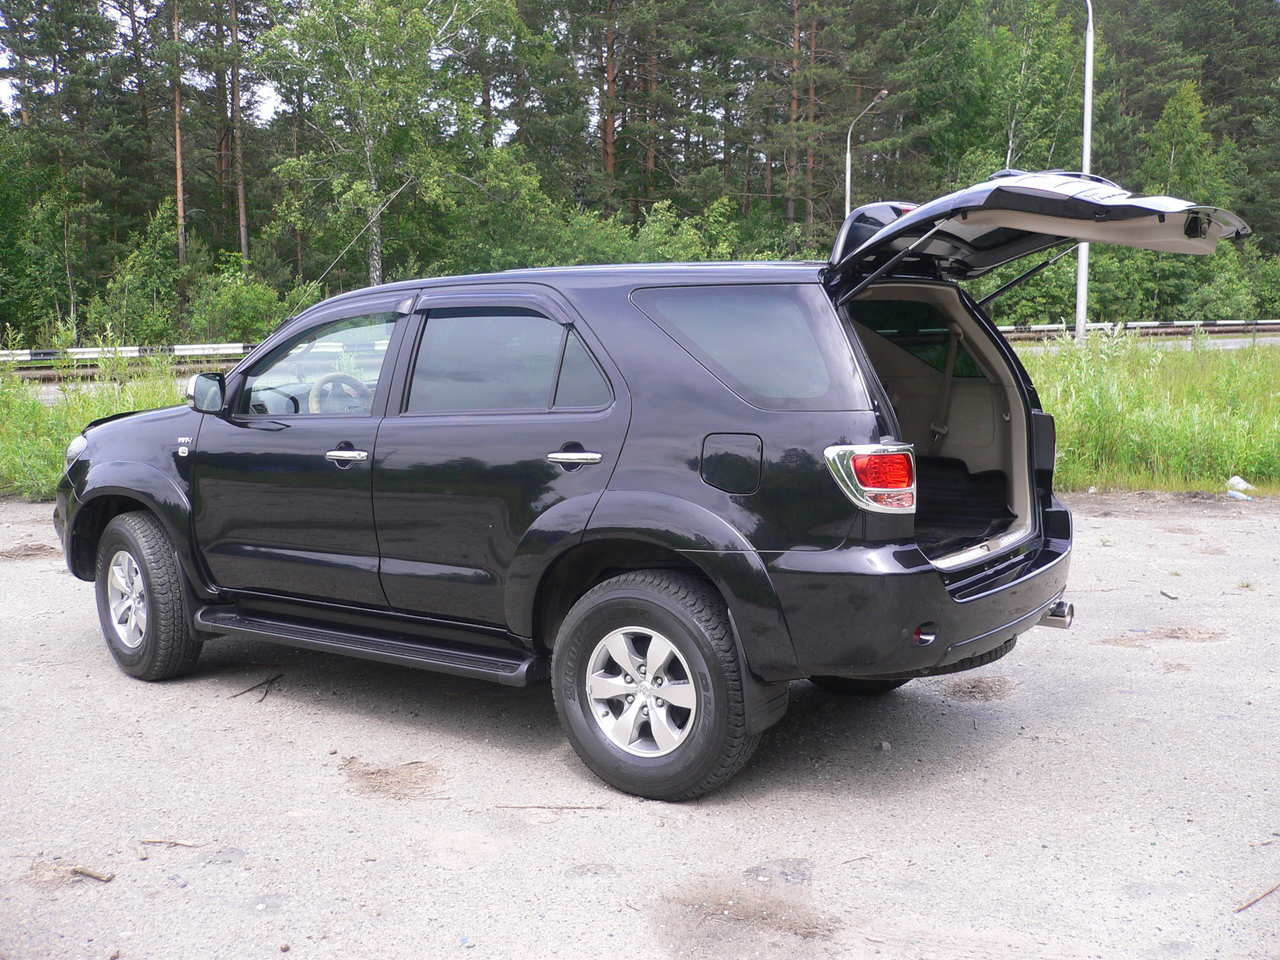 Toyota Fortuner For Sale Second Hand In Philippines 2014   Autos Post